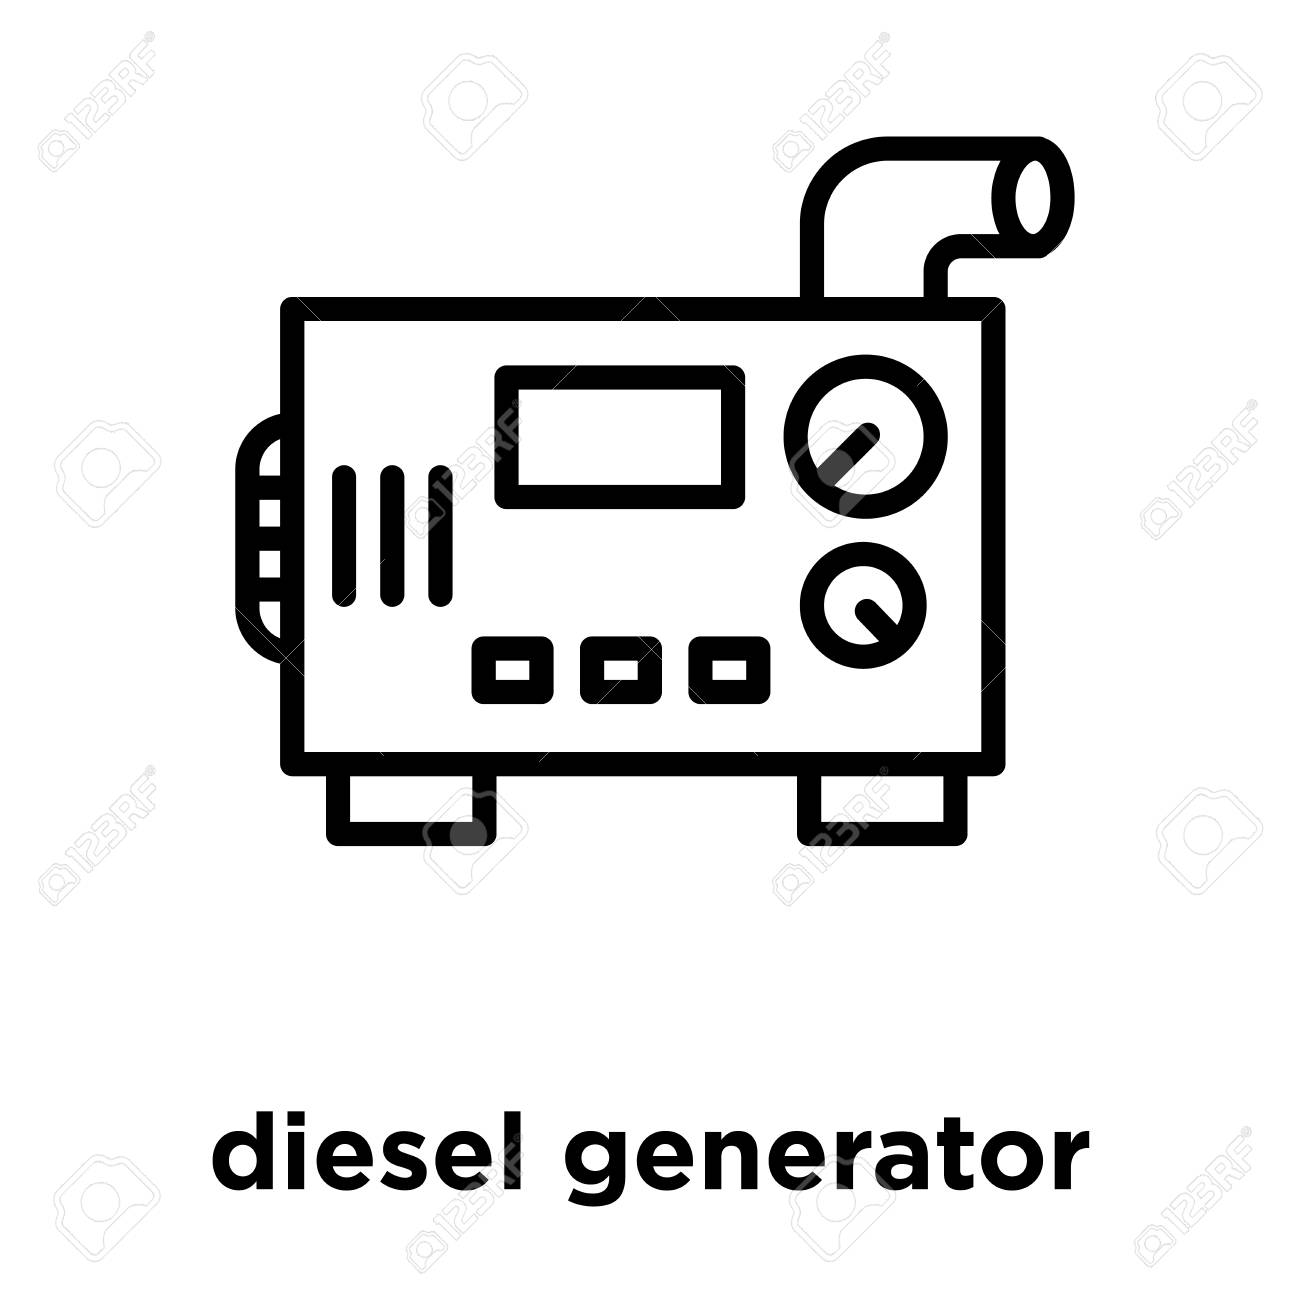 diesel generator icon isolated on white background, vector illustration.